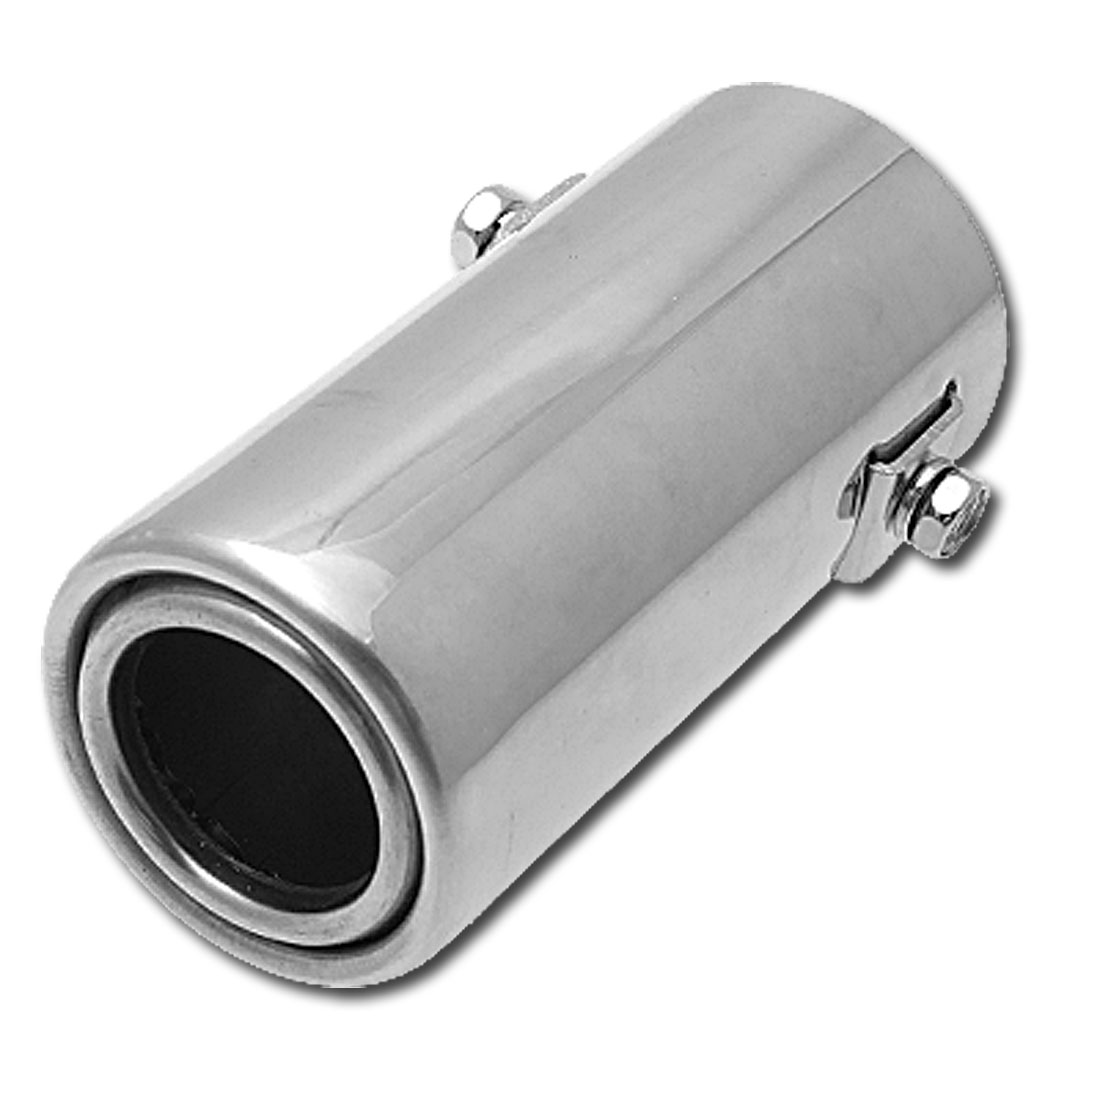 Universal Car Auto Stainless Steel Exhaust Muffler Silvery (XB-639)